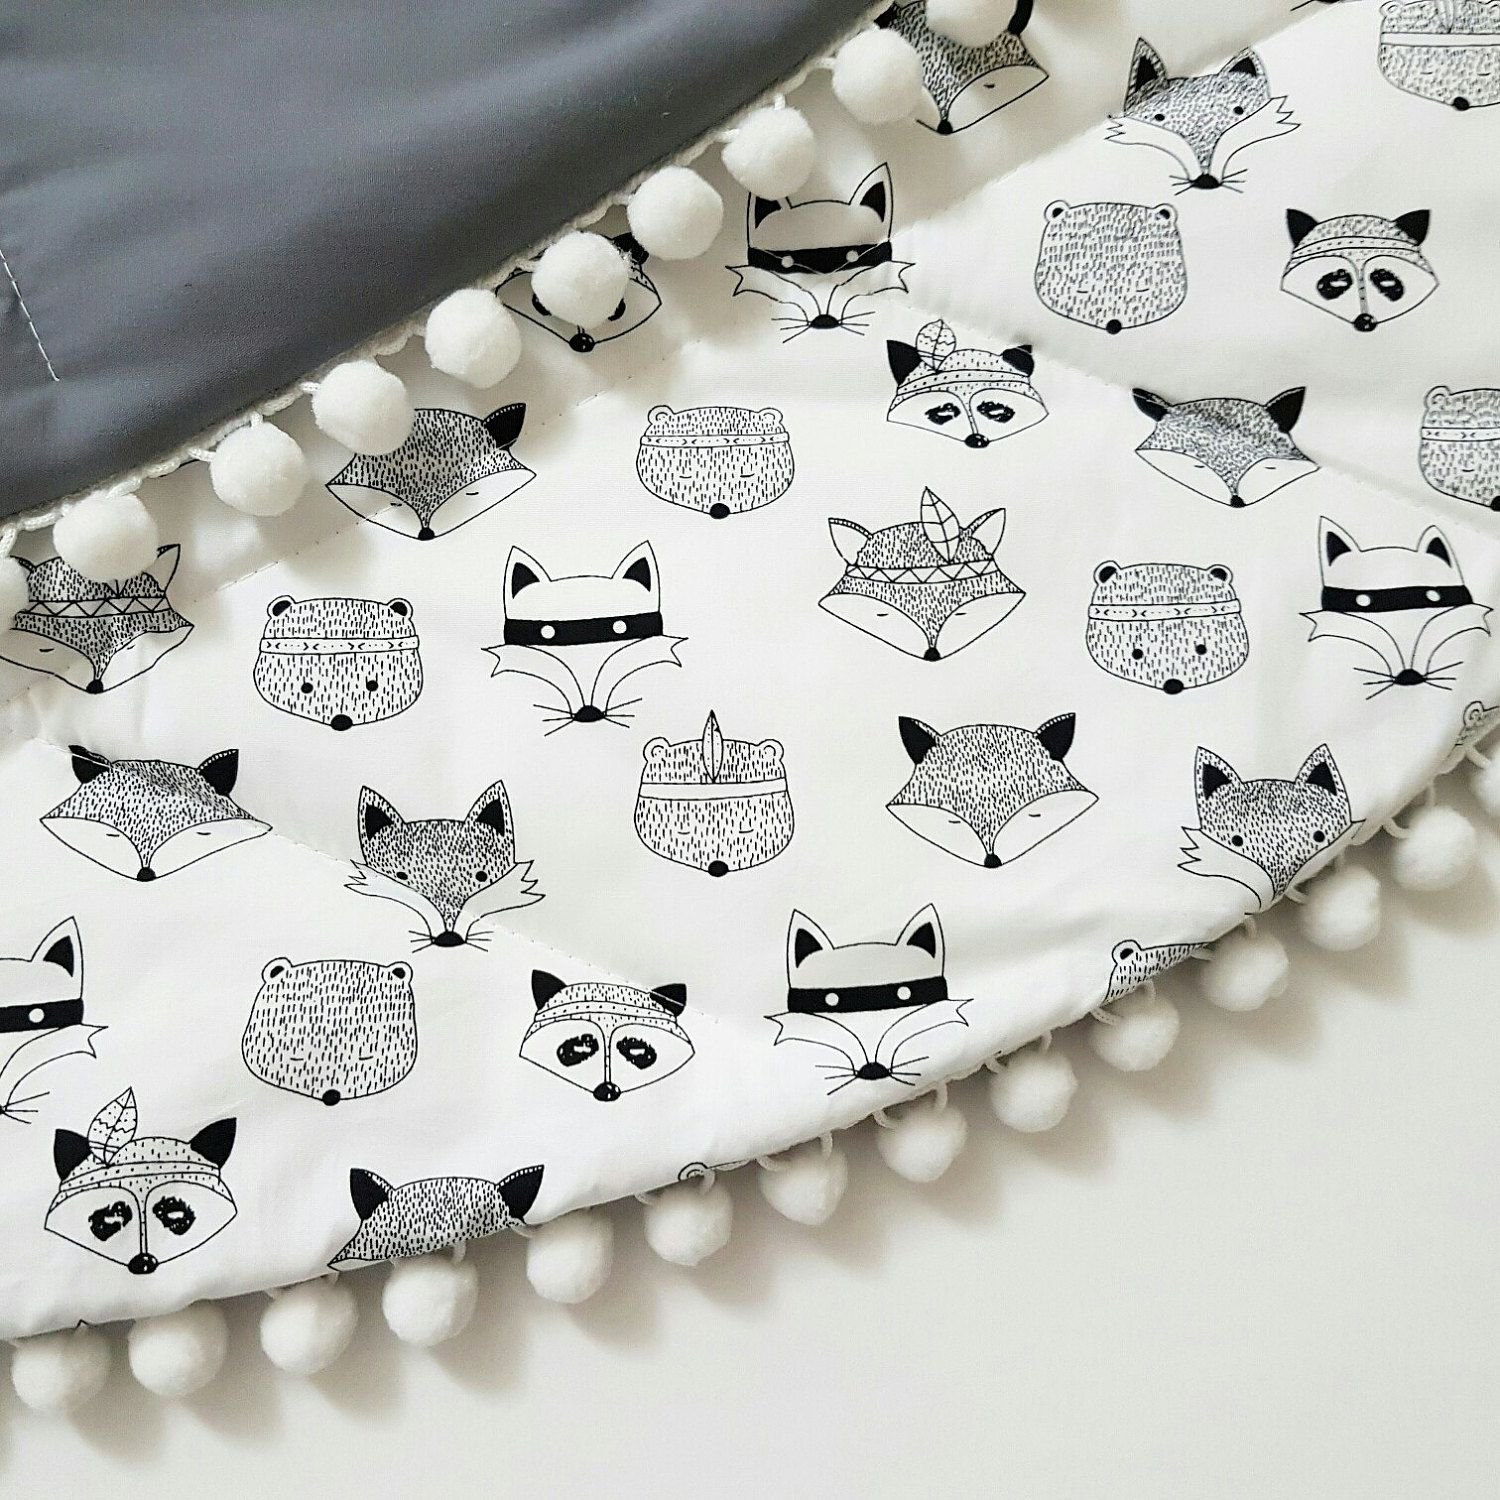 So on trend Monochrome Baby Play Mat